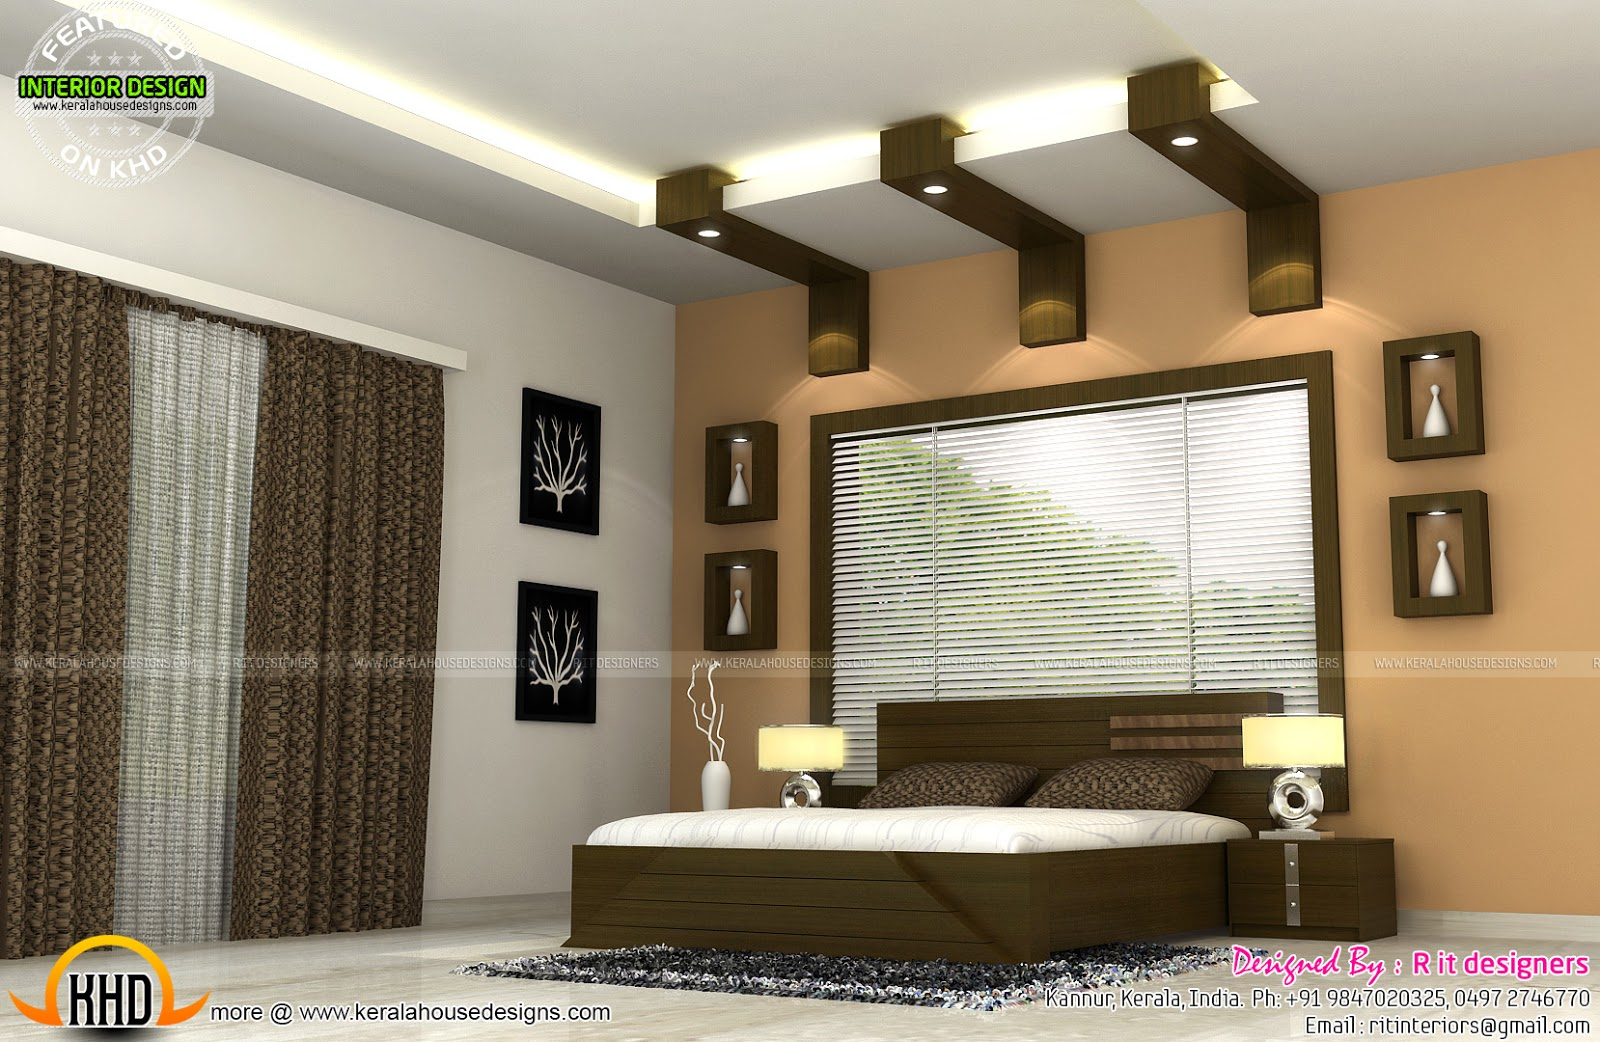 Interiors of bedrooms and kitchen kerala home design and for In side house design